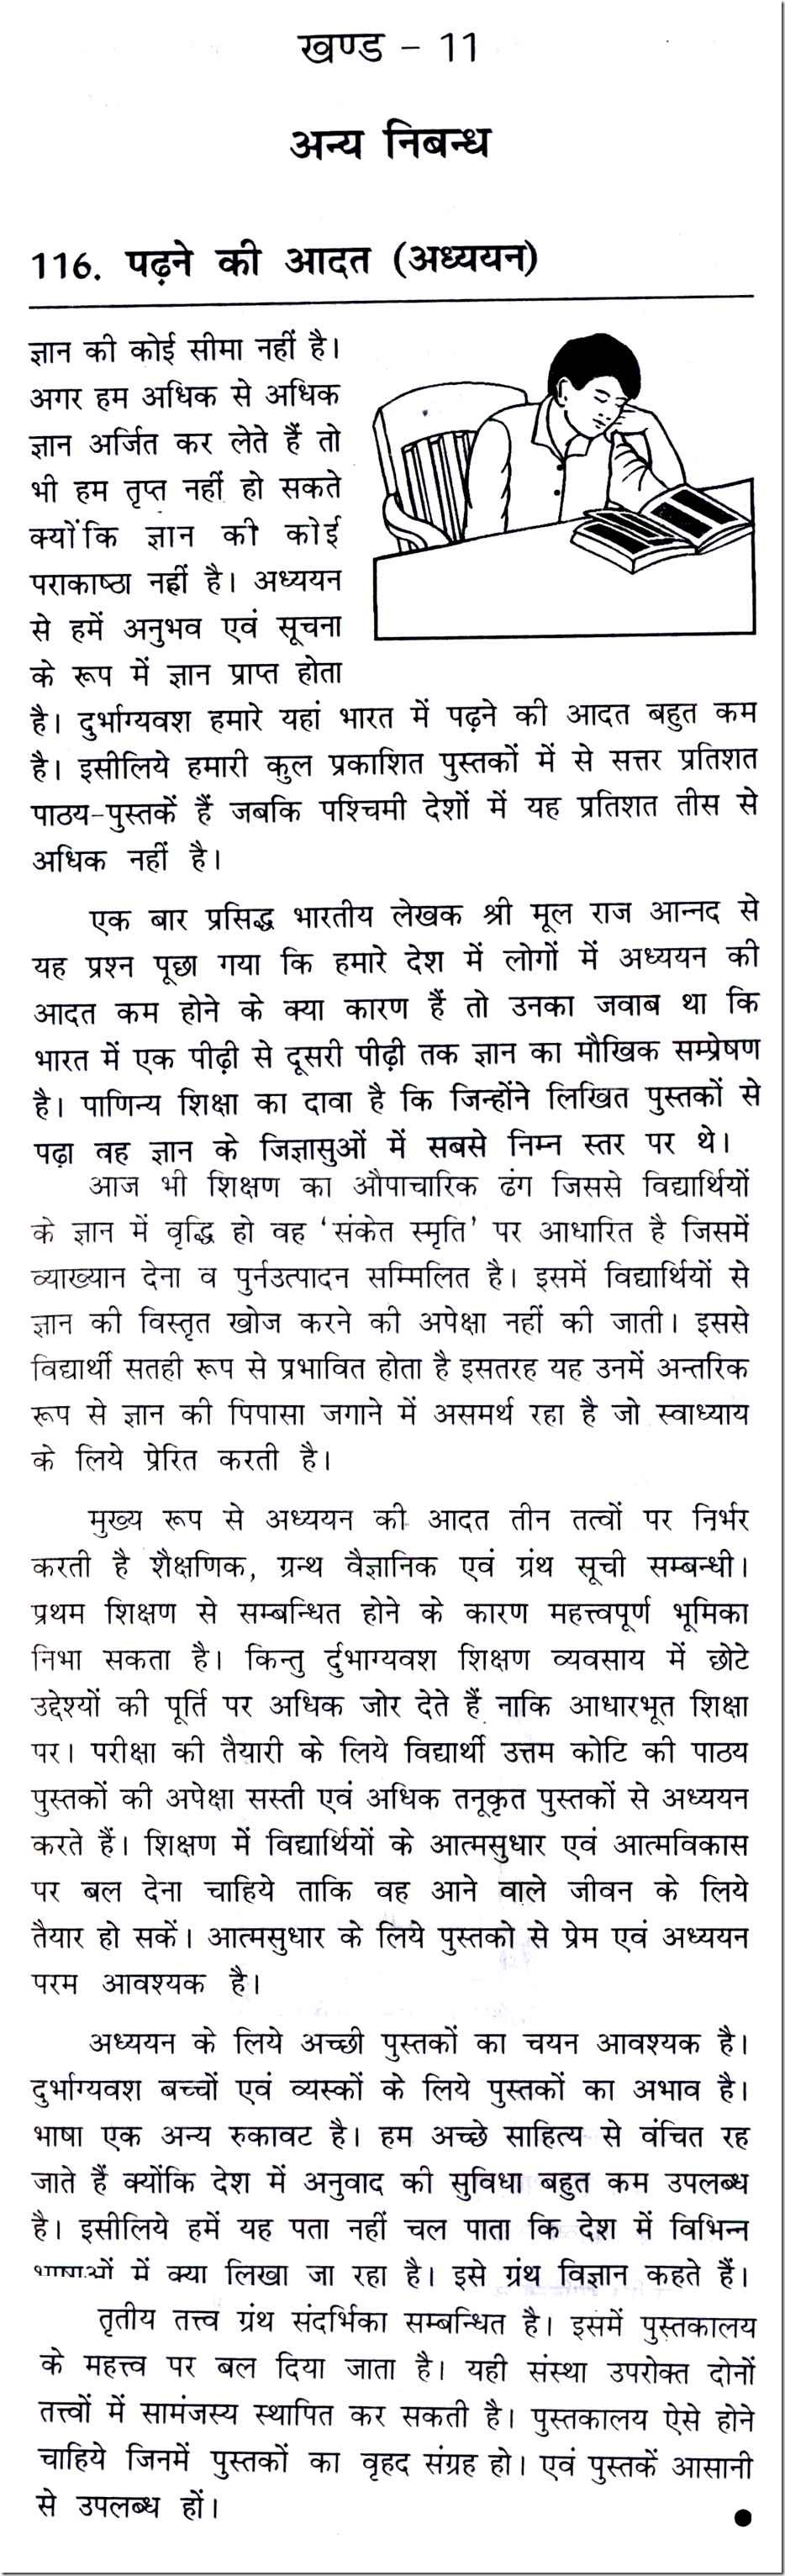 016 Good Habits Essay In Hindi 10118 Thumb Exceptional Reading Habit Wikipedia Full